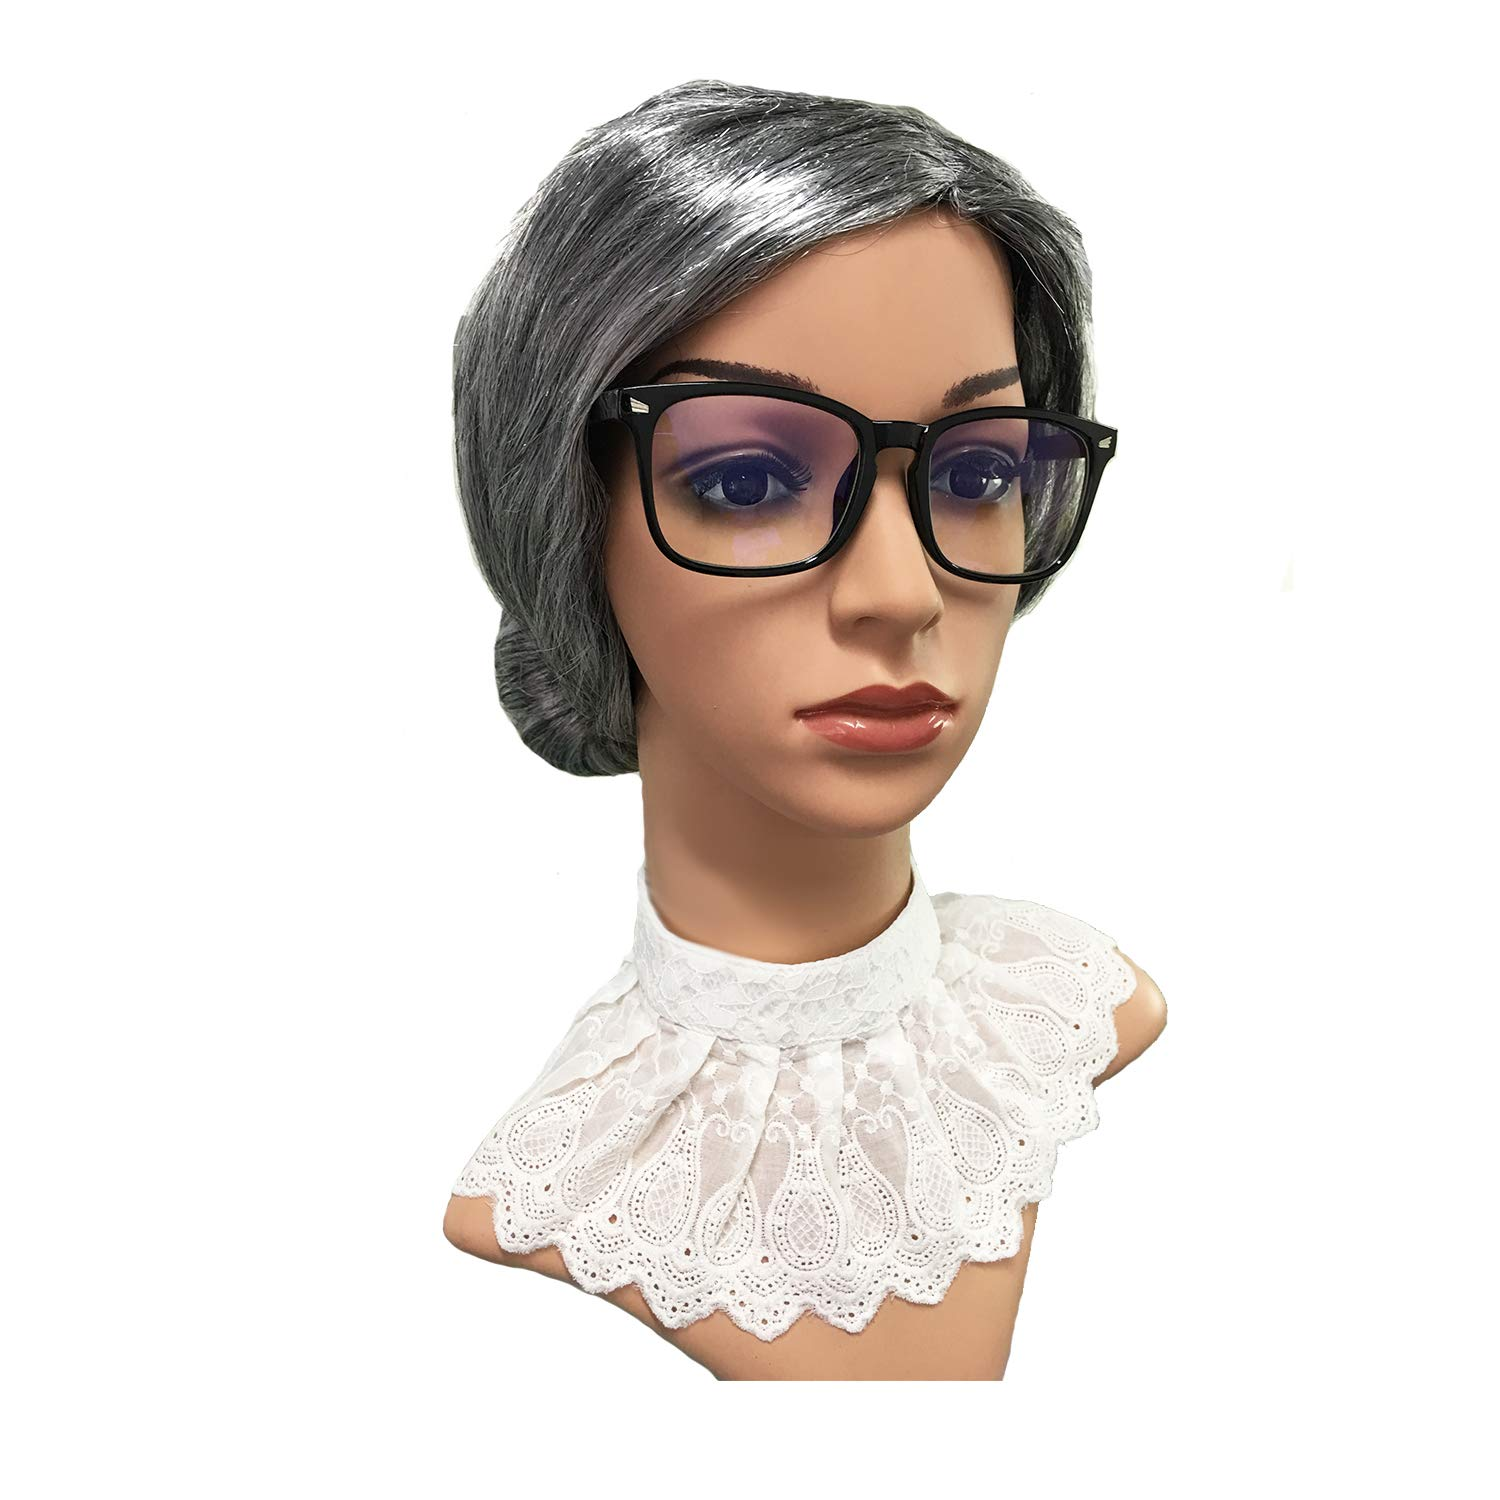 Old Lady Granny Wig,False Lace Collar Choker Blouse,Judge Gavel w//Large Nerdy Glasses RBG Wig Set